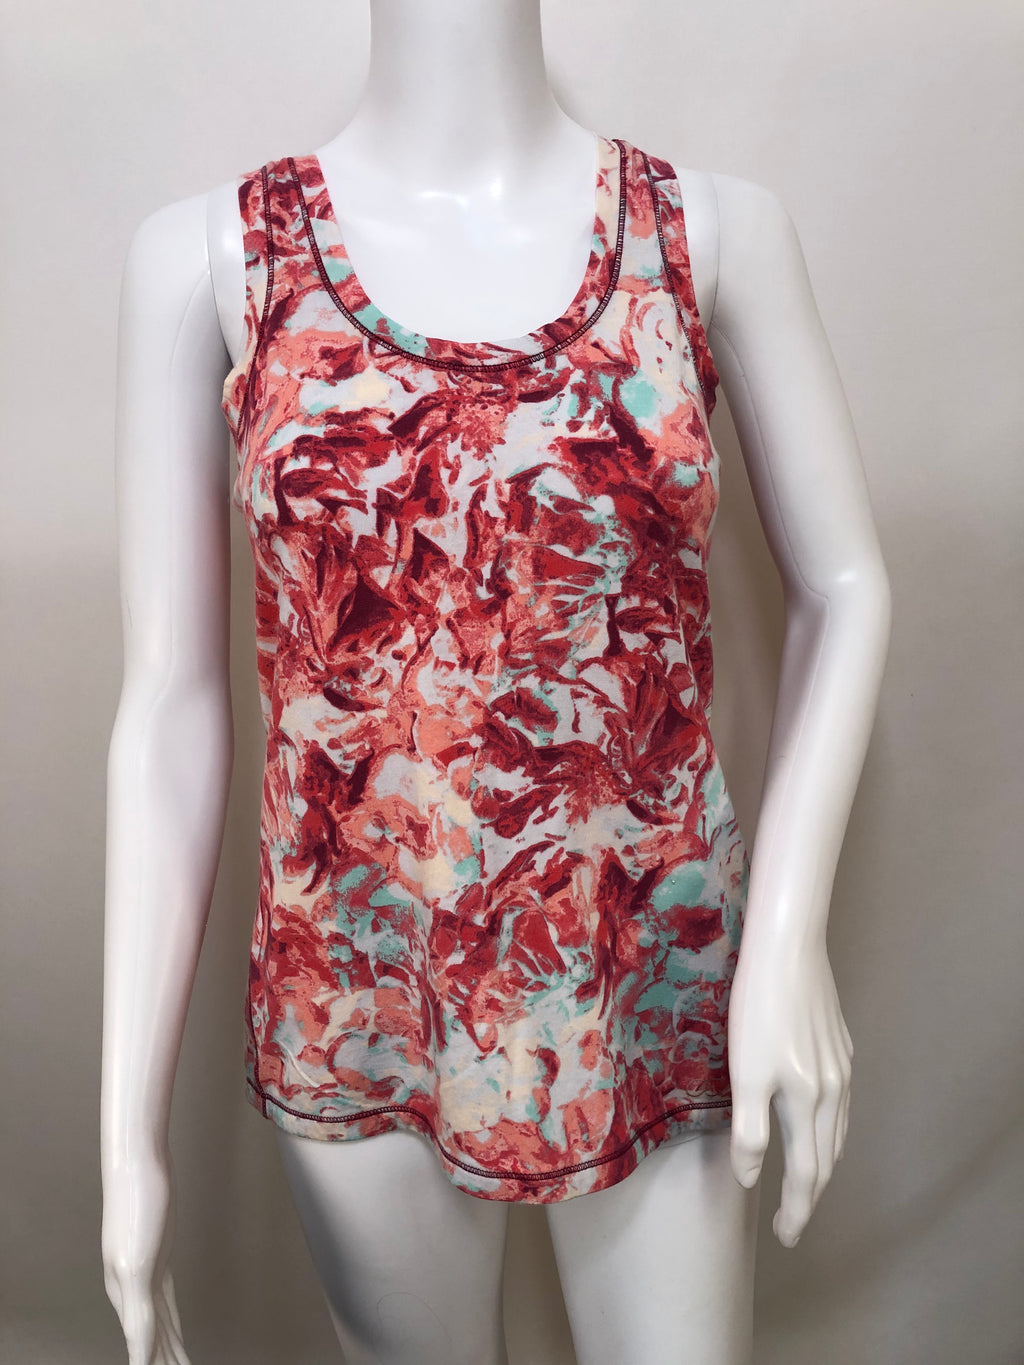 Calia Athletic Tank Top Size:s